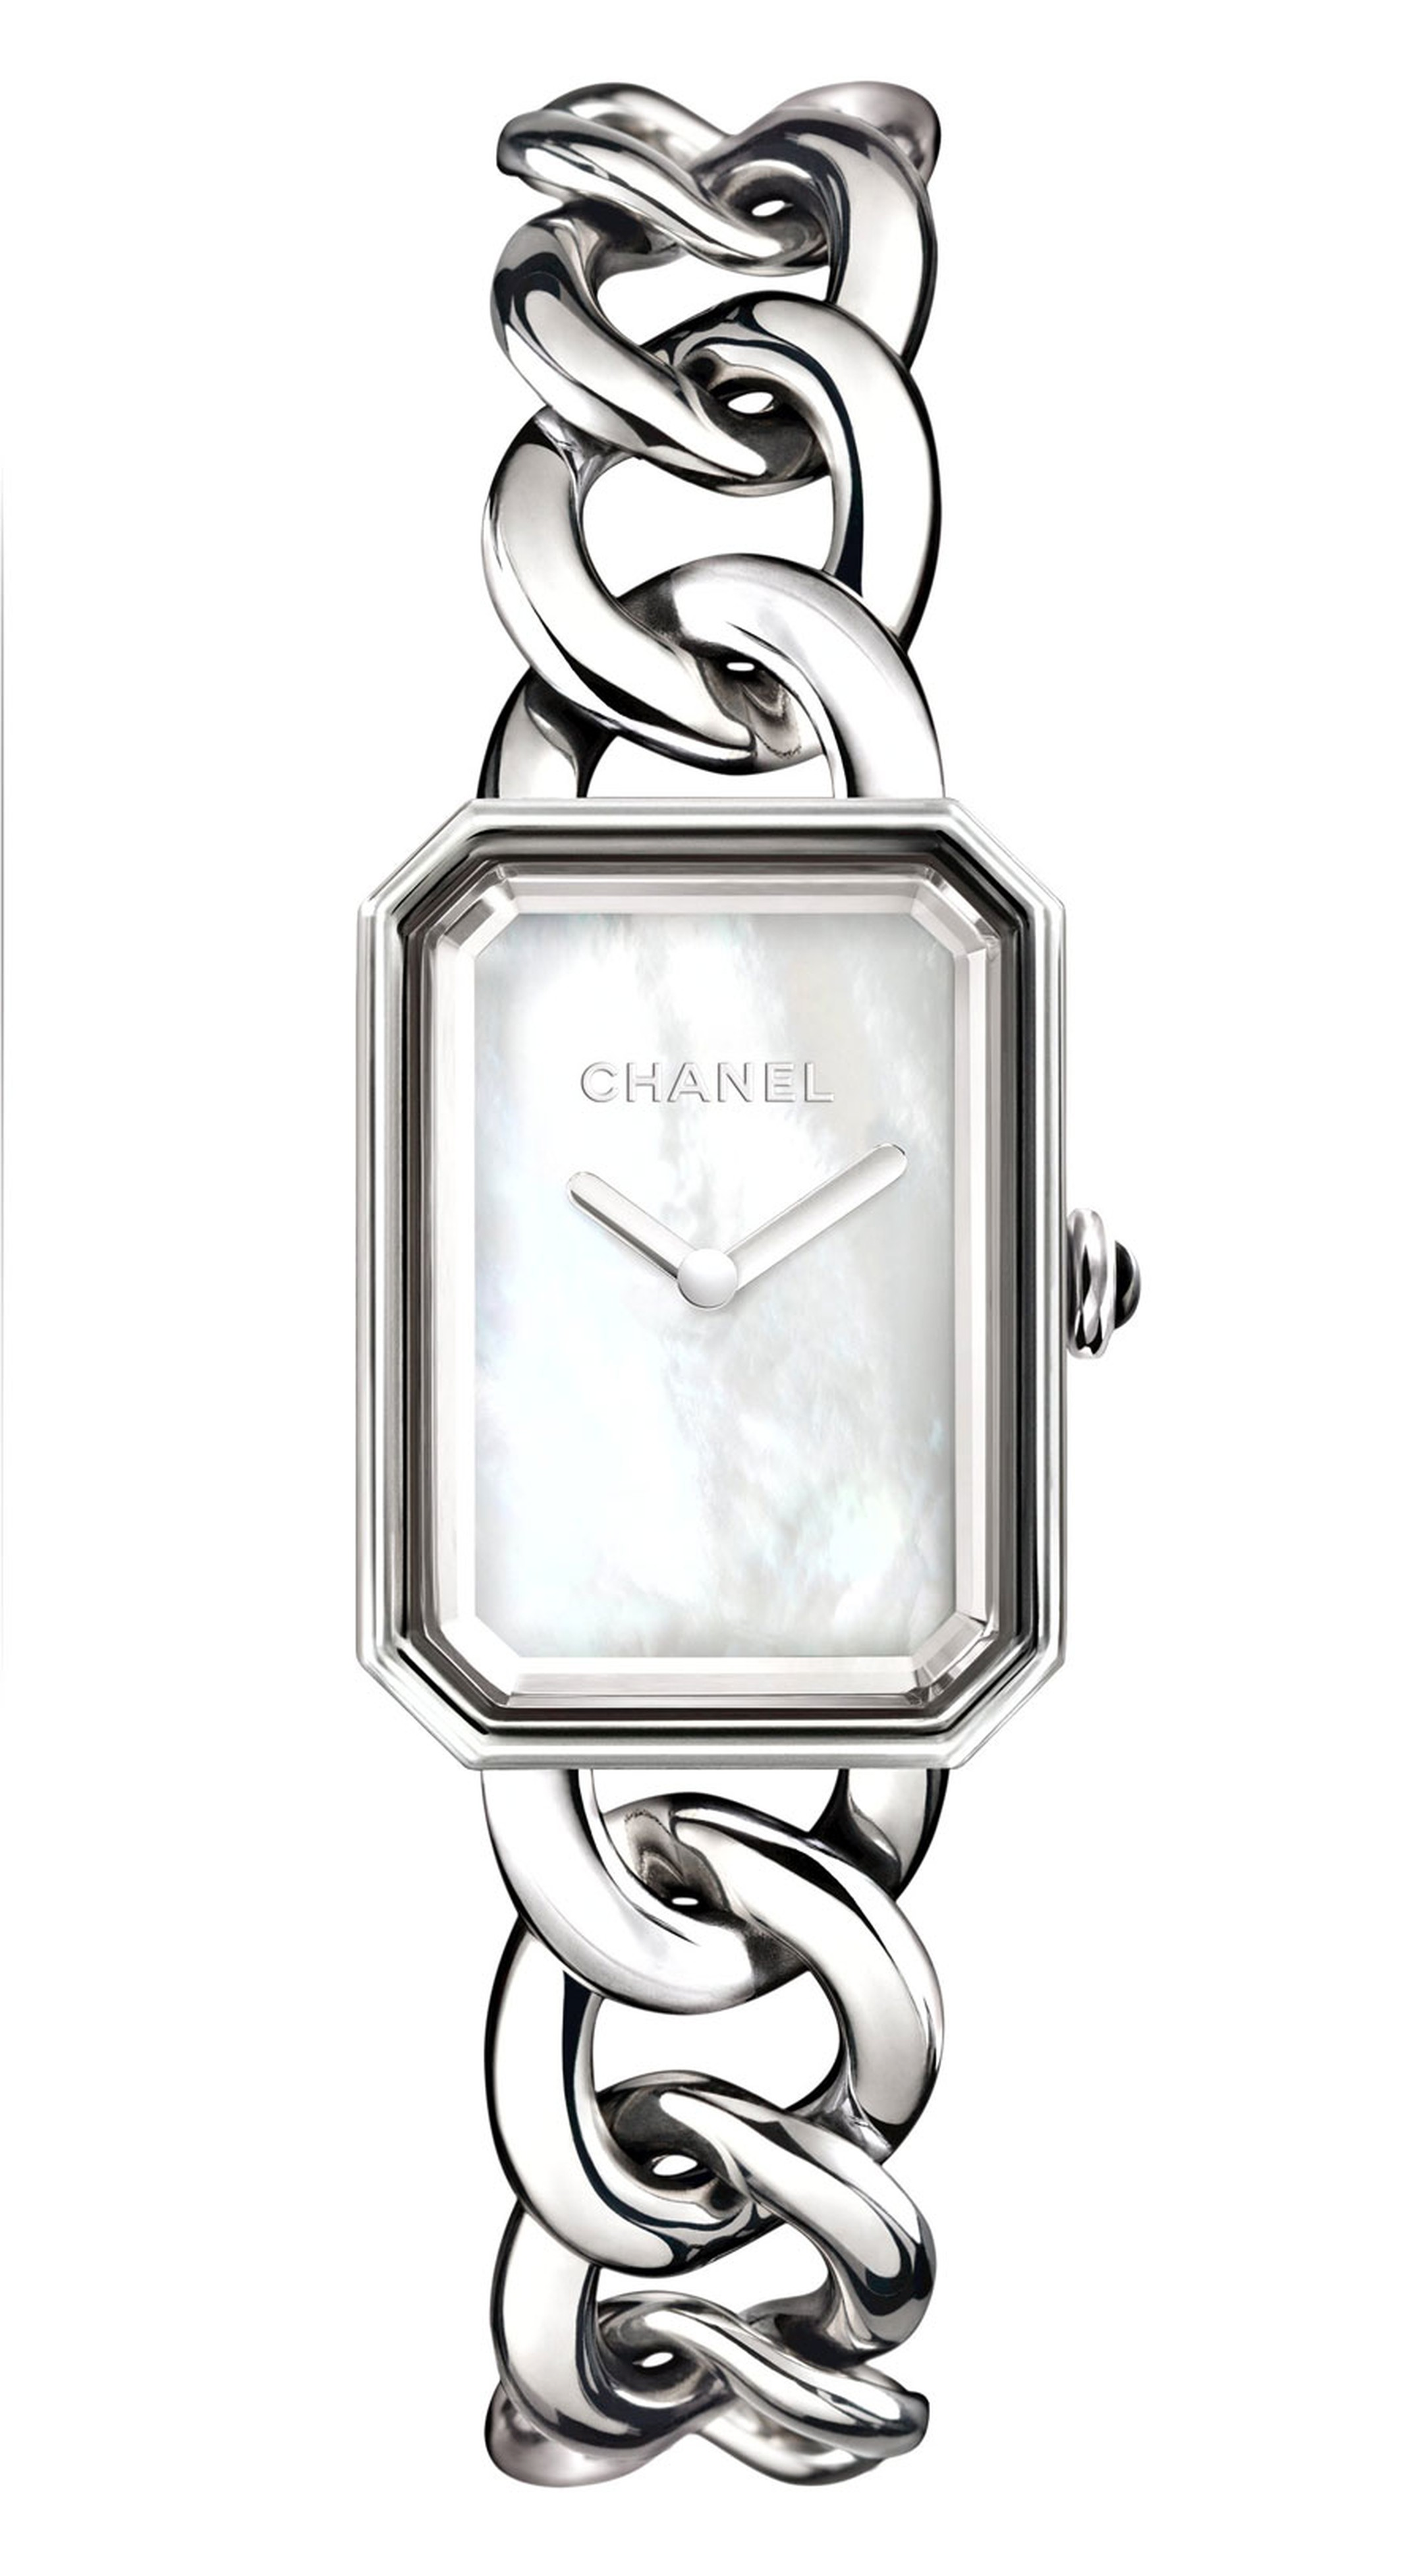 Chanel-Premiere-watch-acier-cadran-nacre-GM-H3251.jpg